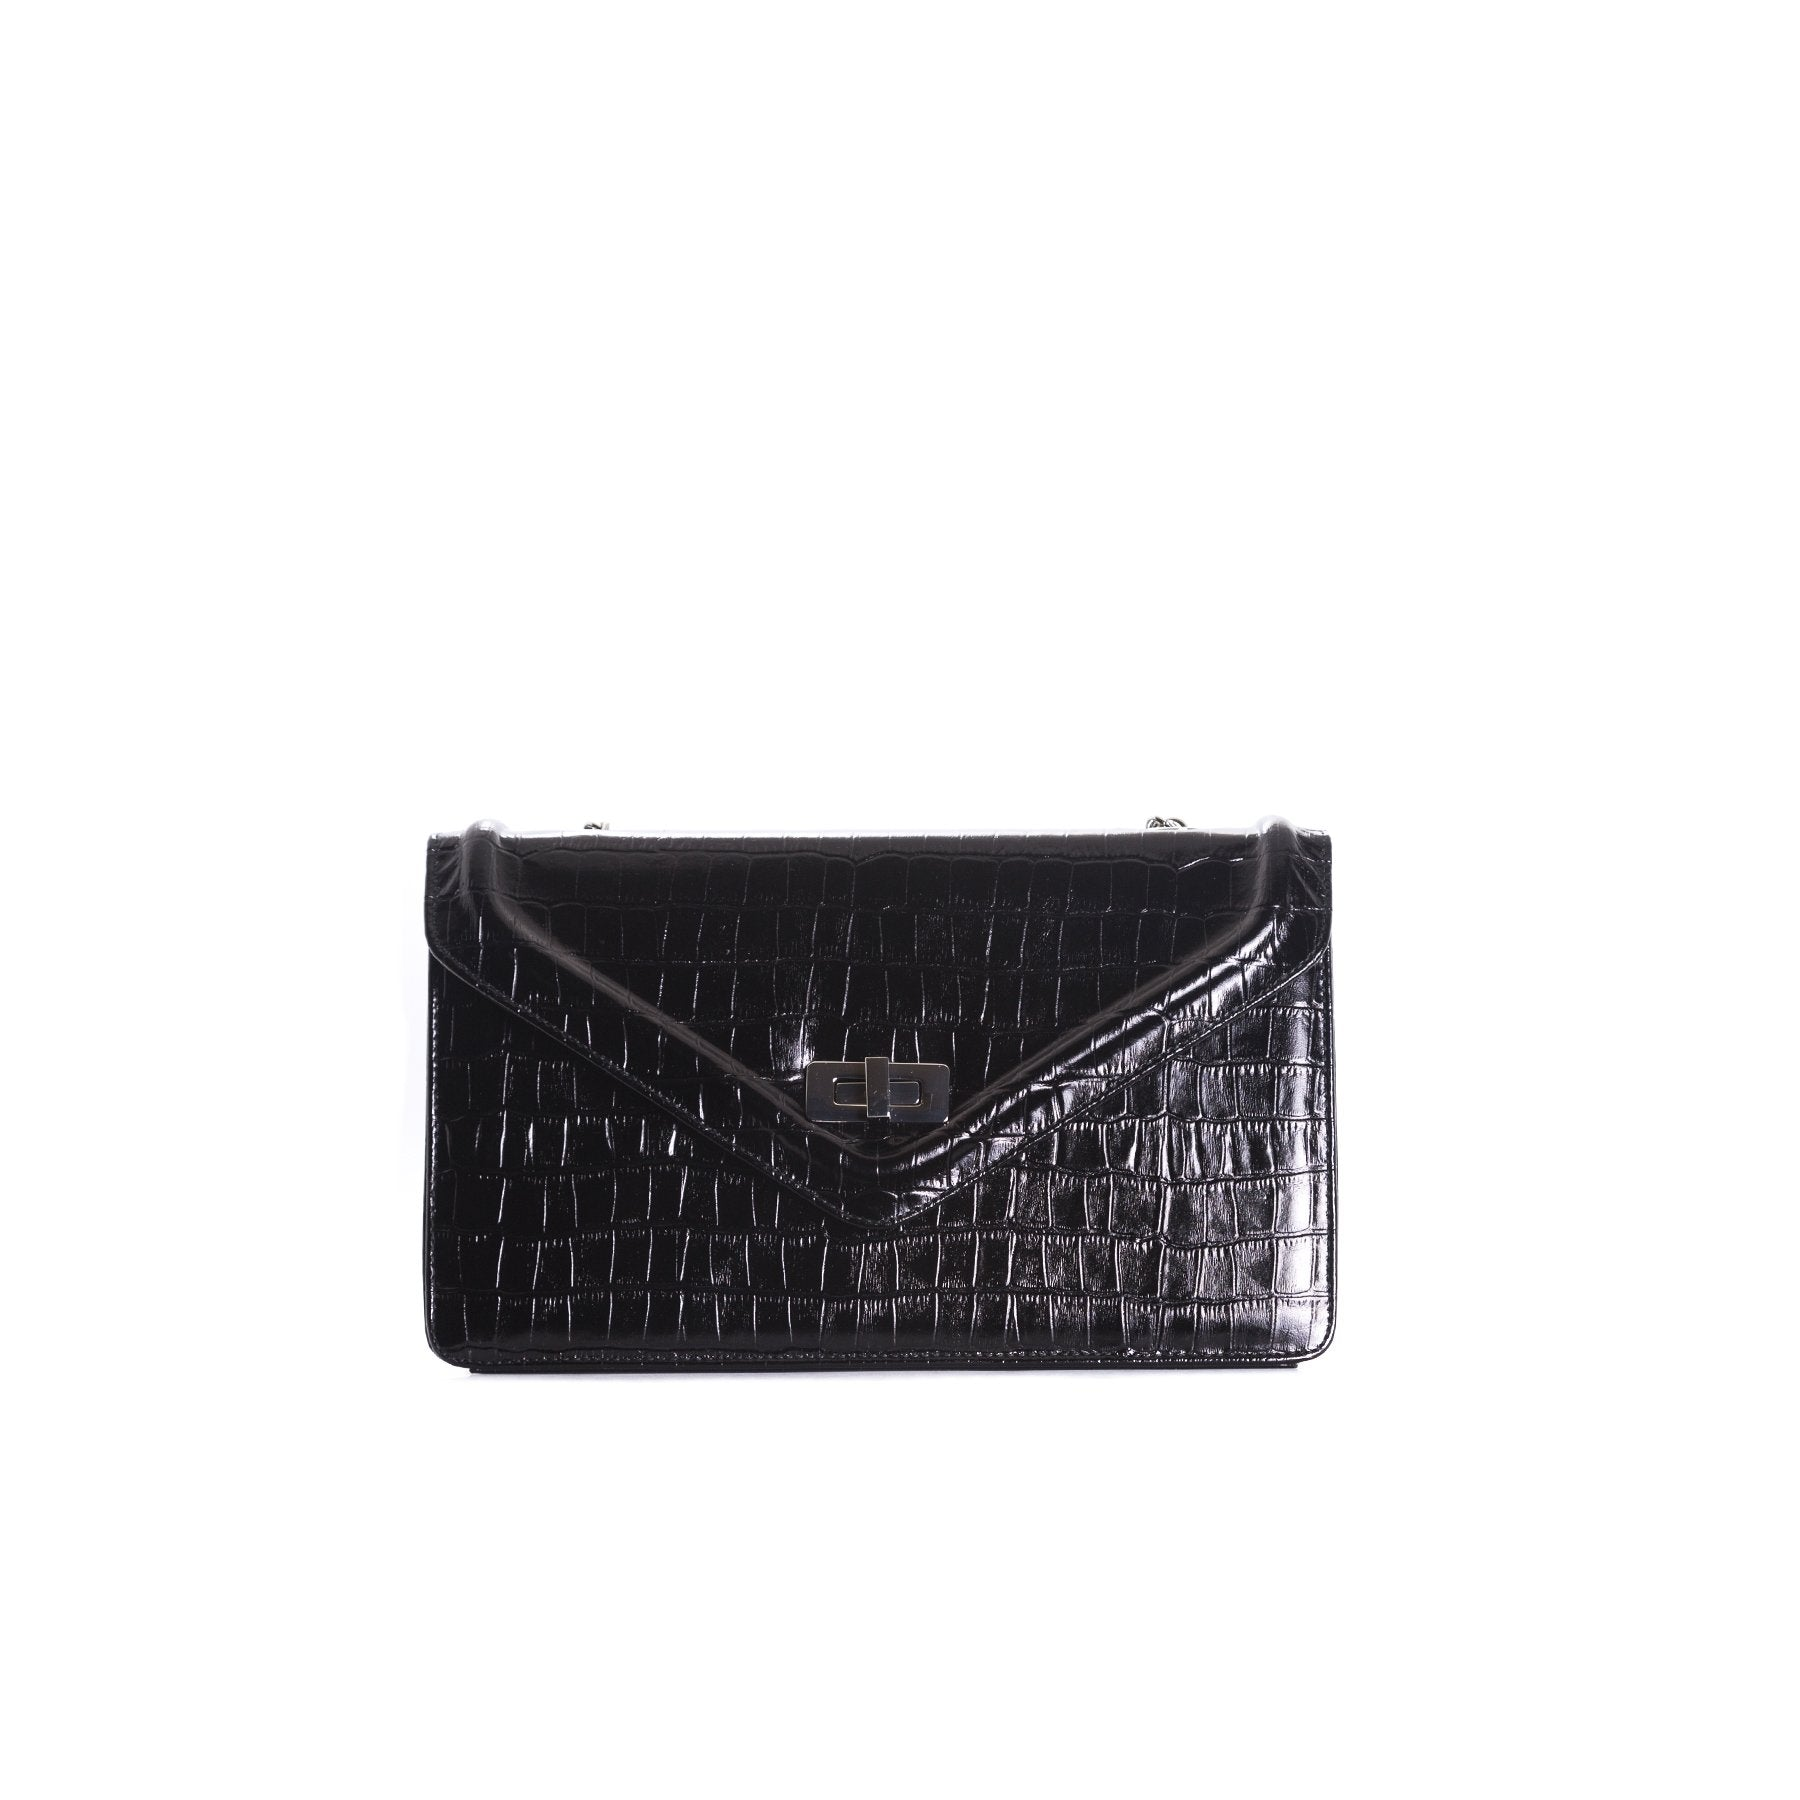 Amandine Black Croco Shoulder Bags